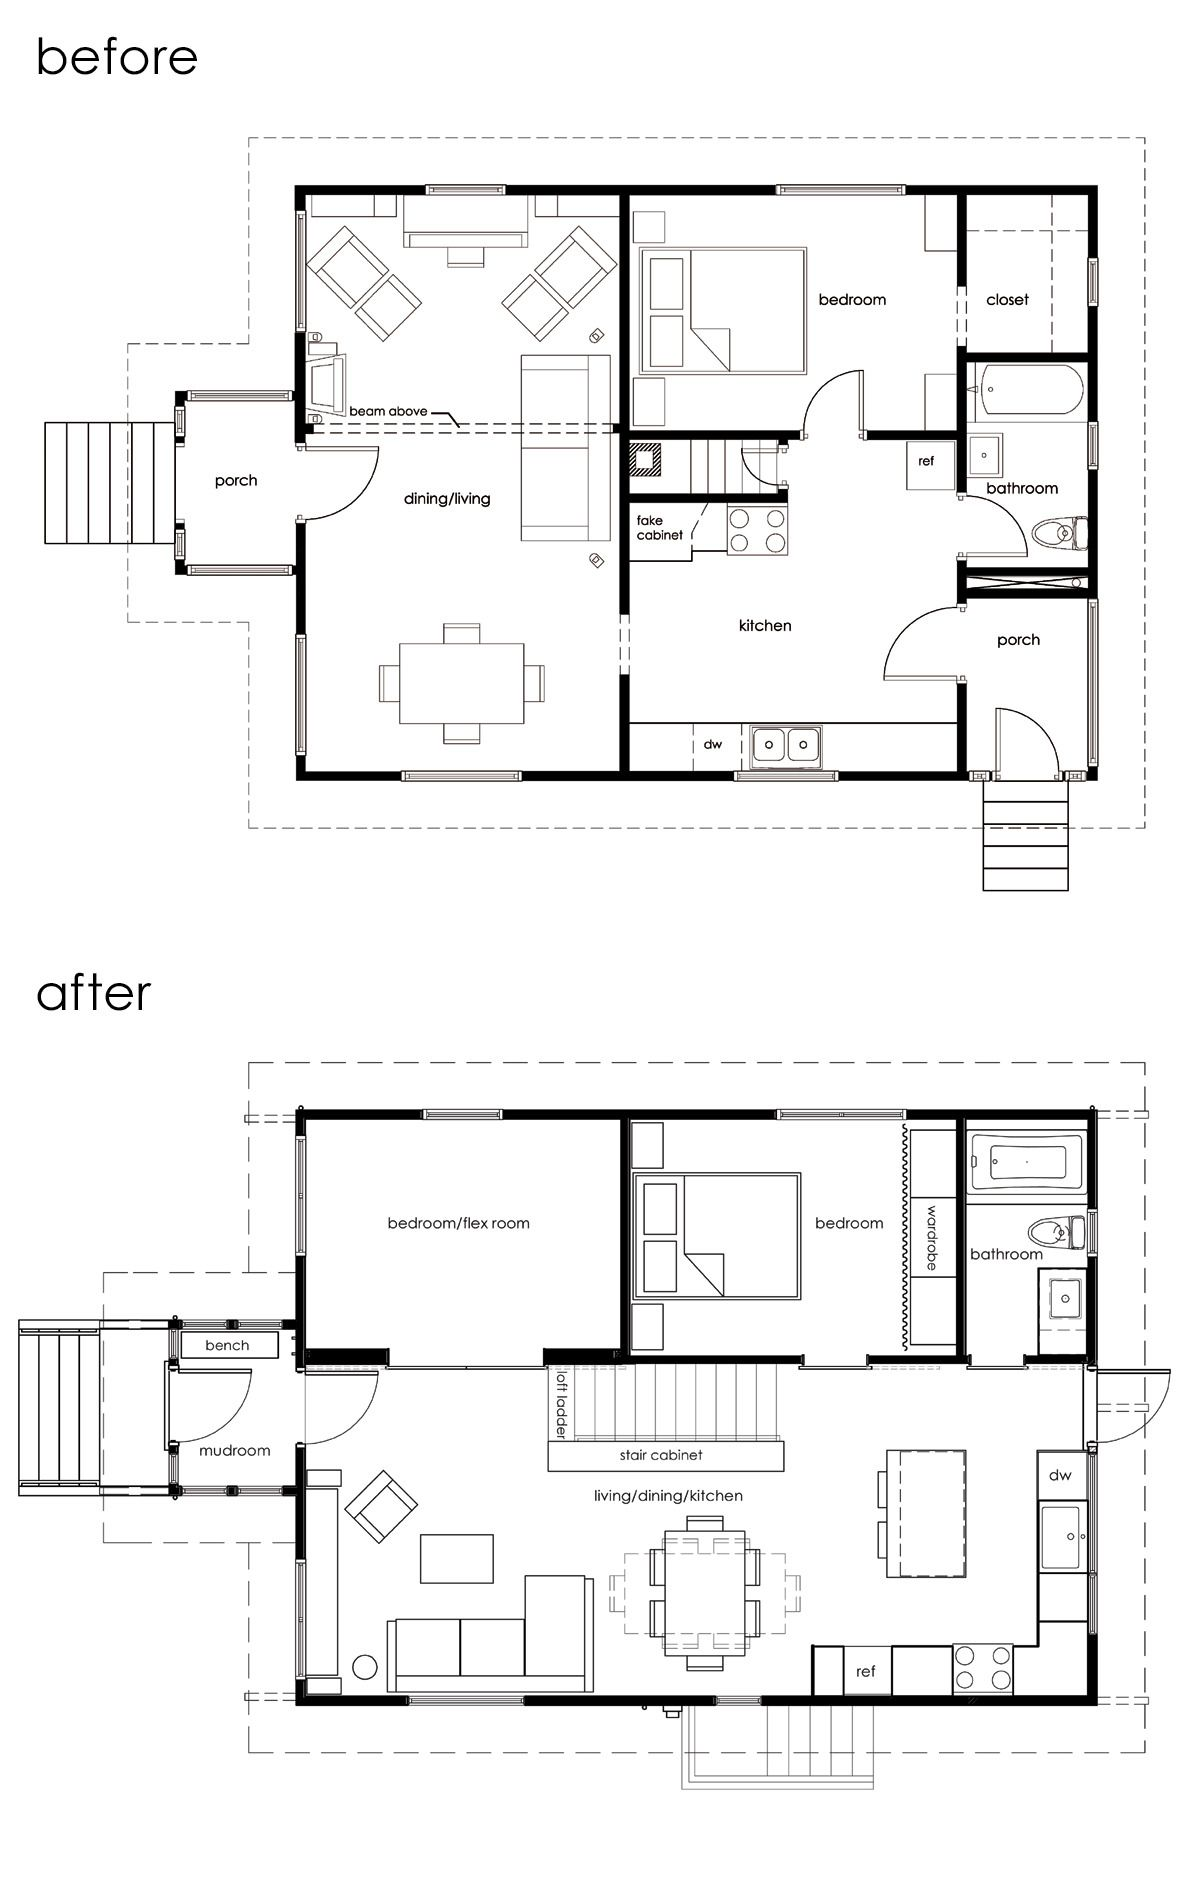 How To Draw House Plans Free 2020 In 2020 Drawing House Plans Floor Plan Design Kitchen Floor Plans